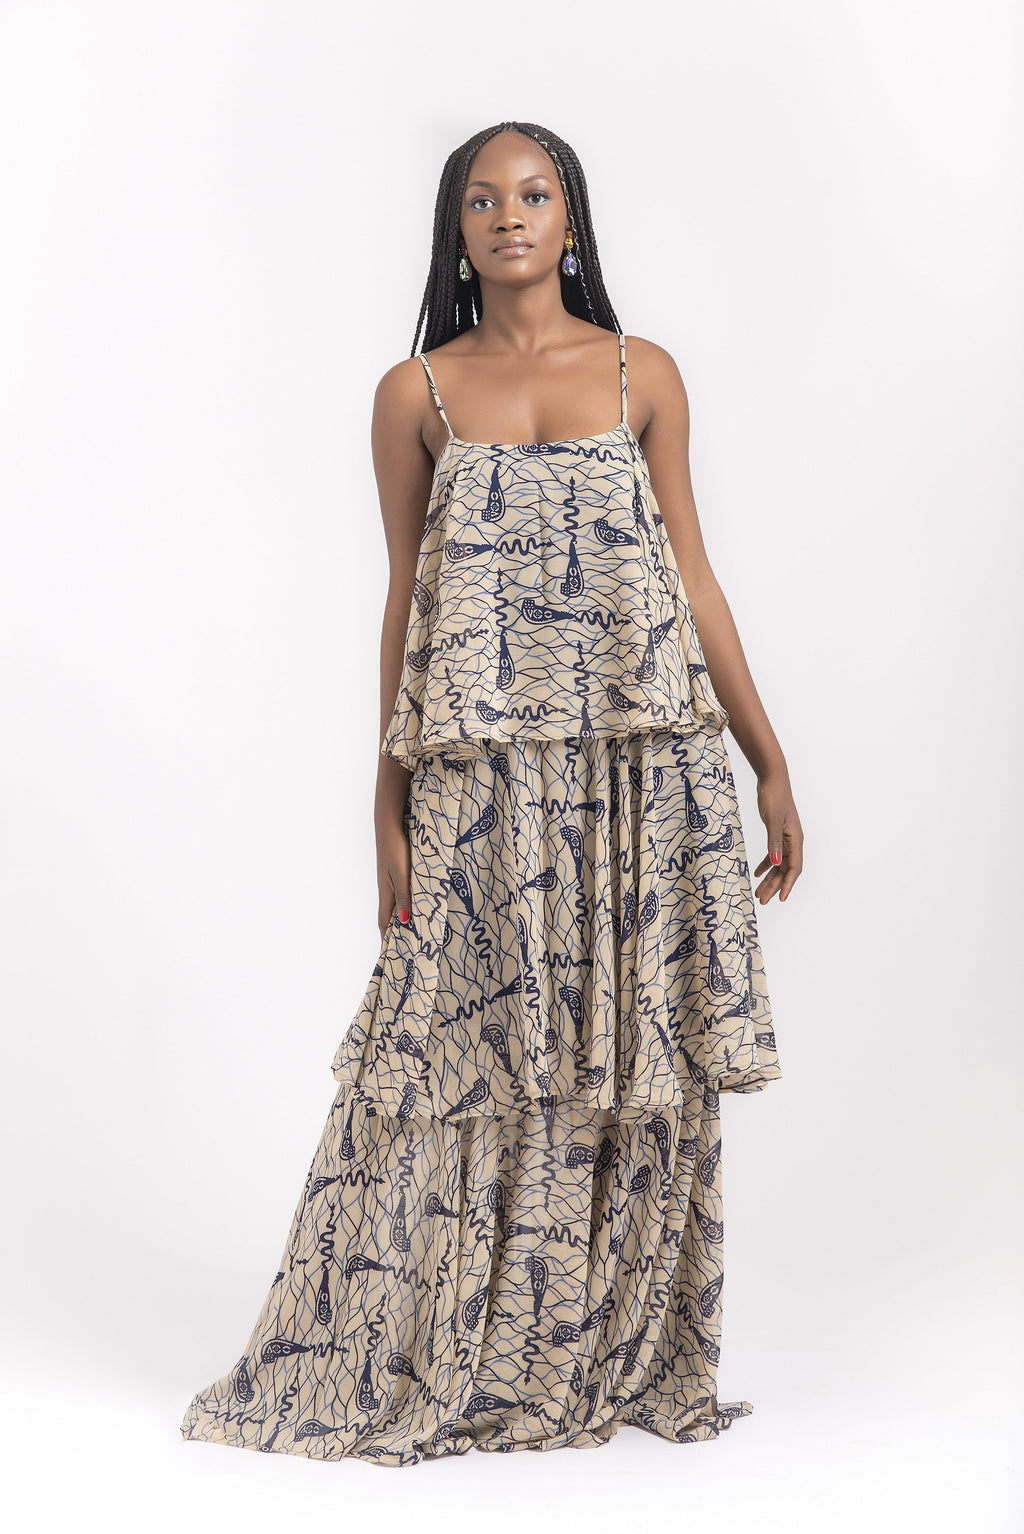 THREE TIER MAXI DRESS